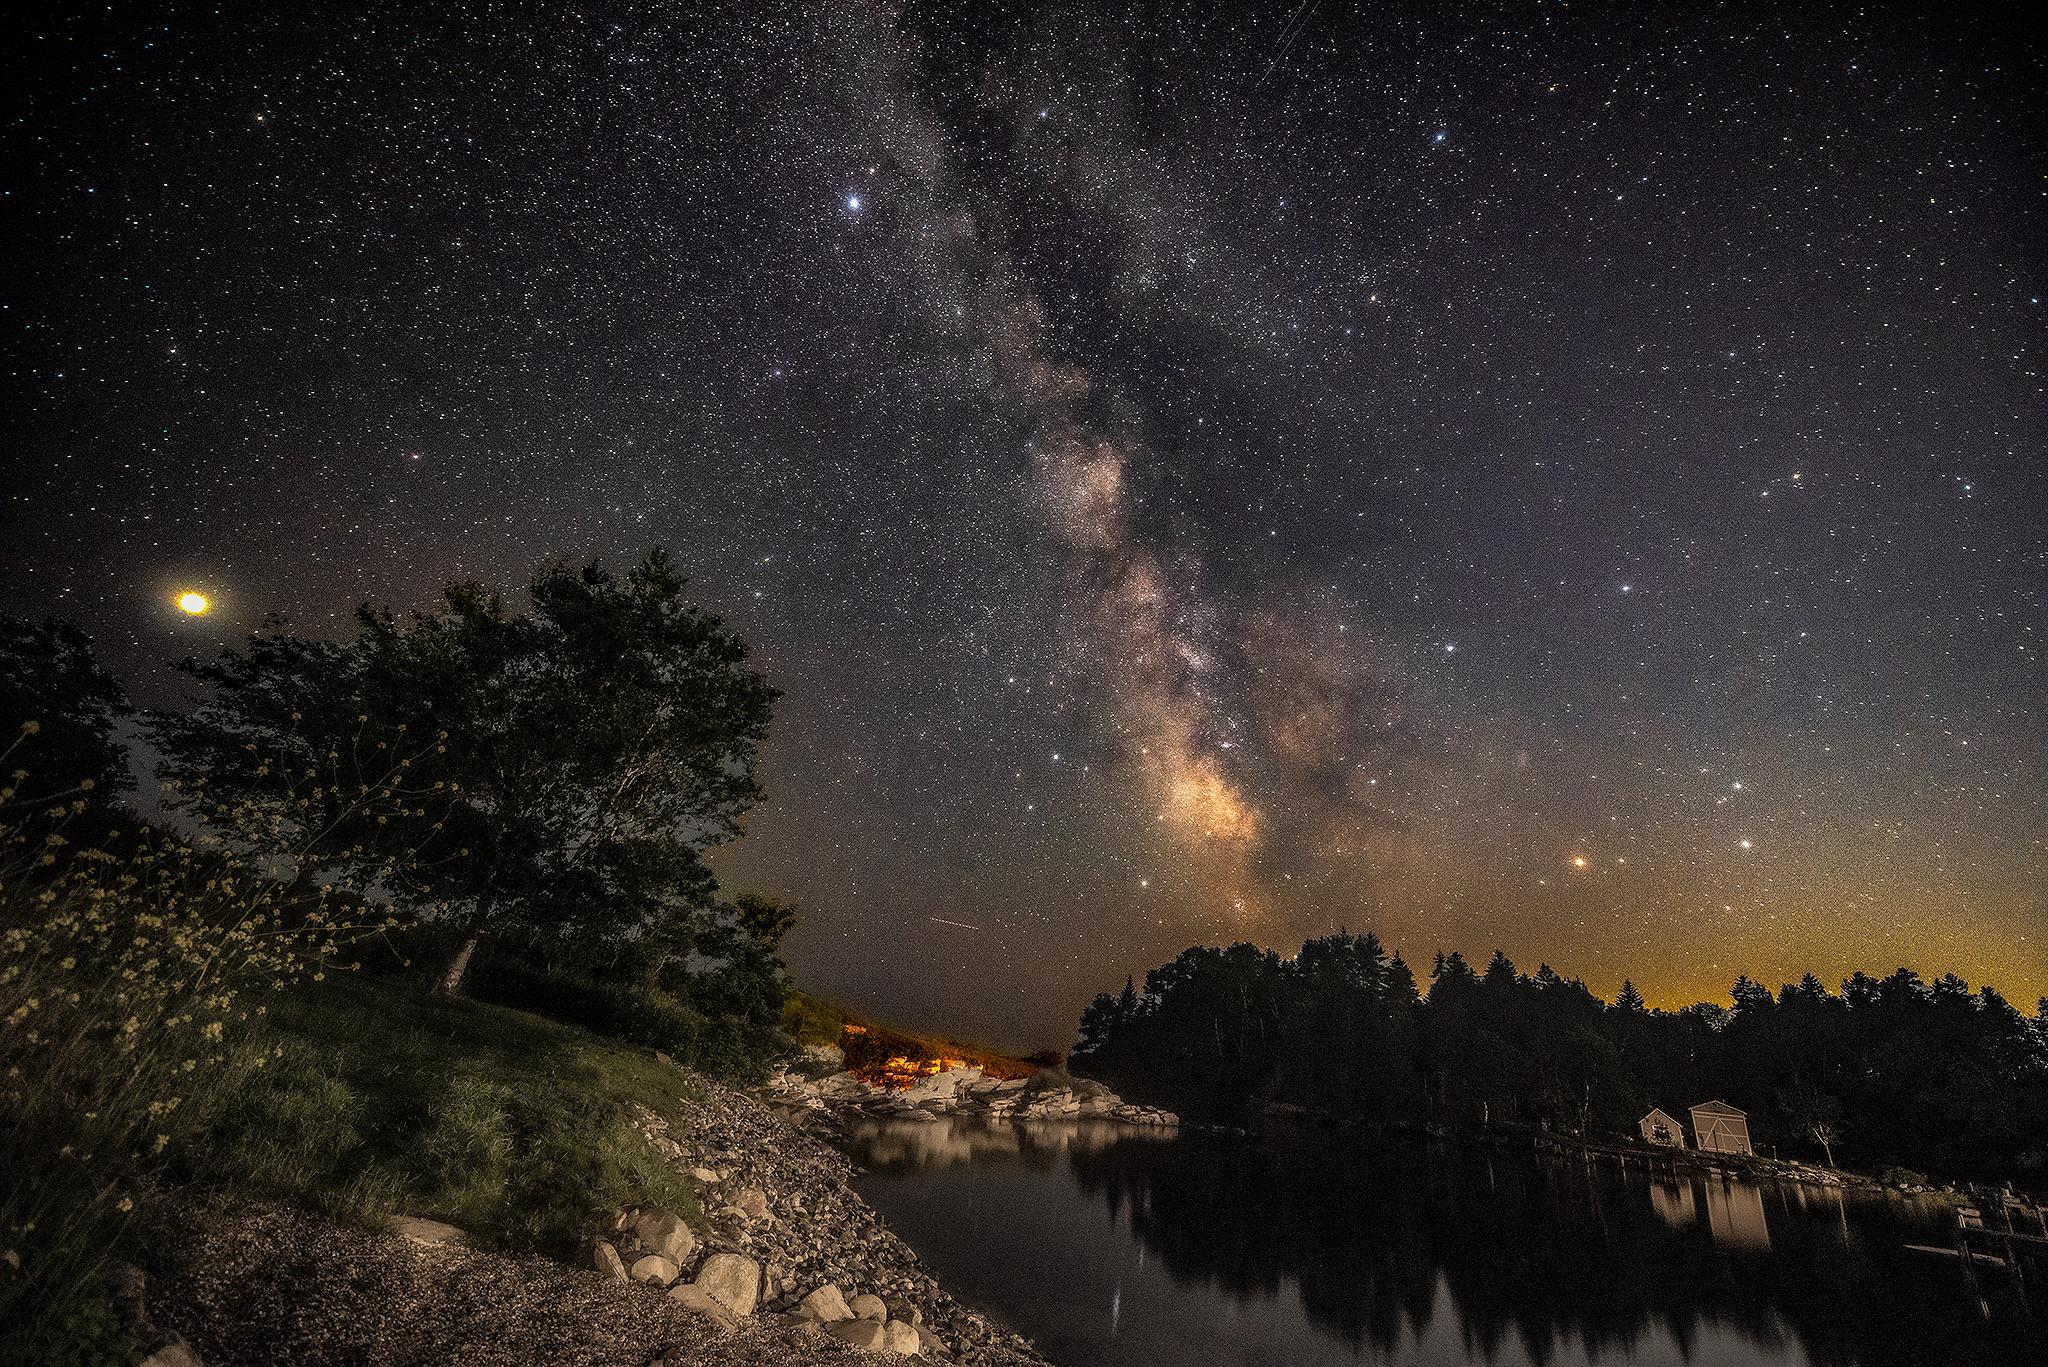 Milky Way season is a great time to drop the telescope and pick up a wide angle camera